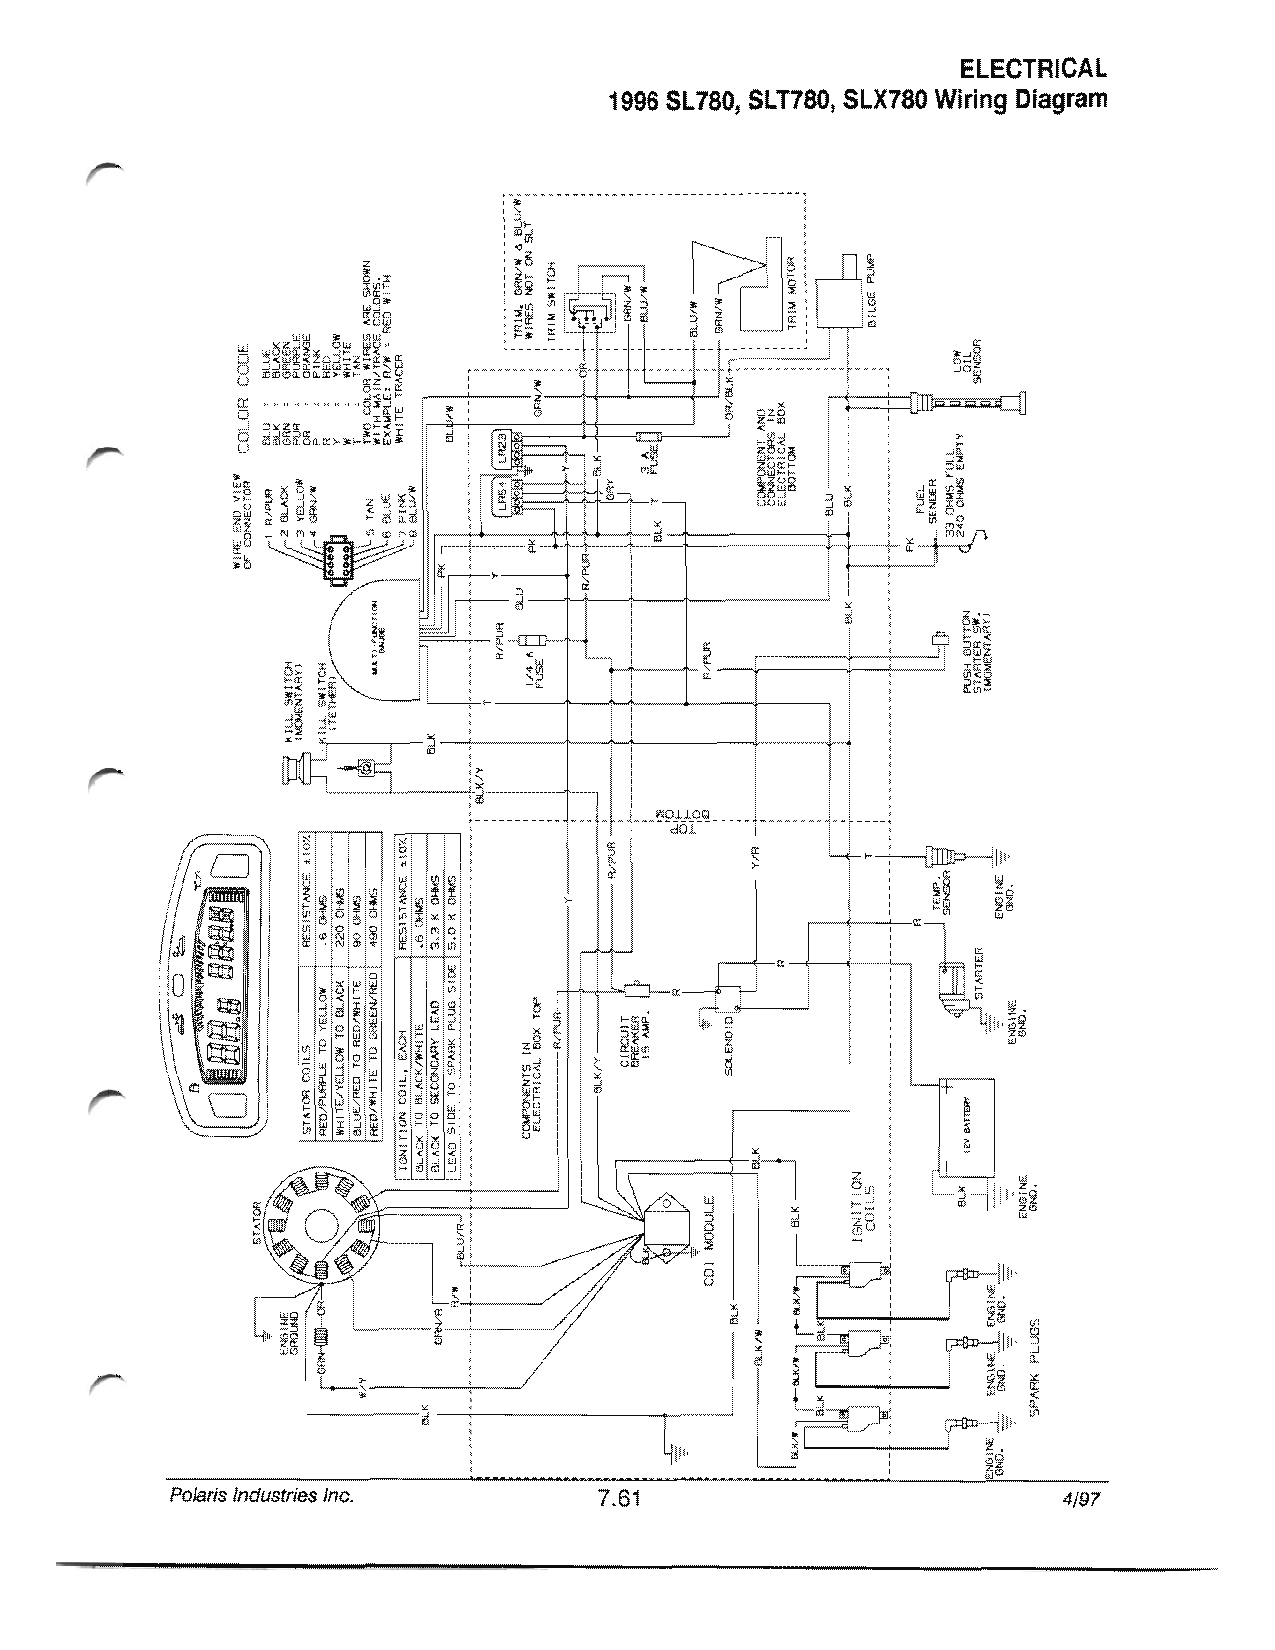 Kz750 E1 Wiring Diagram 1980 Z1000 Wiring Diagram Wiring